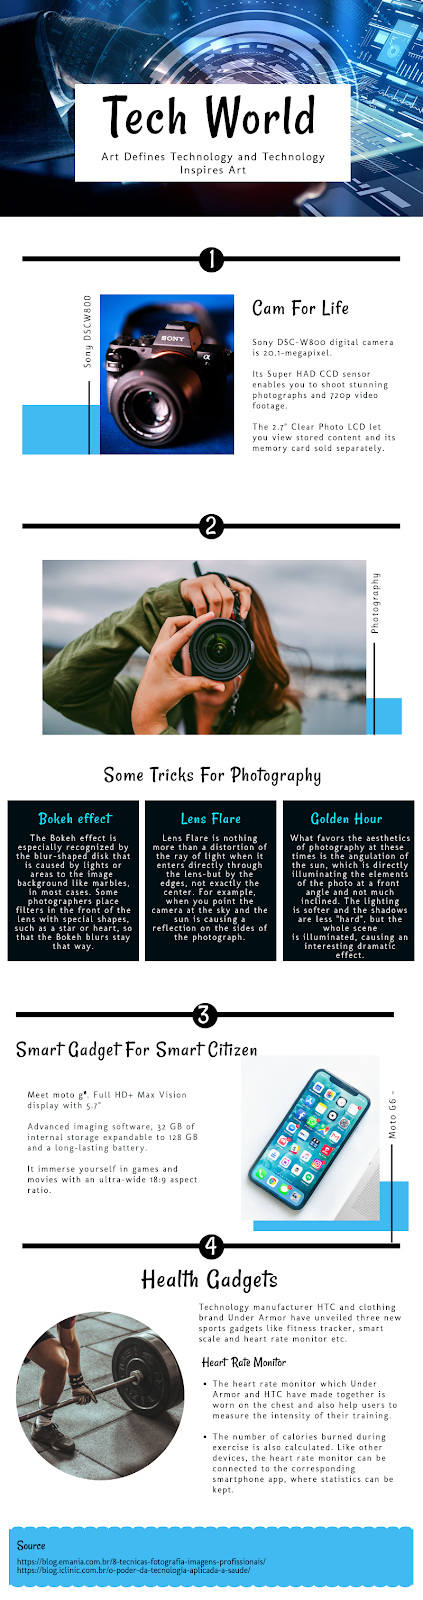 Choose Your Camera For Travel Photography - Mirrorless camera for Travel Photography